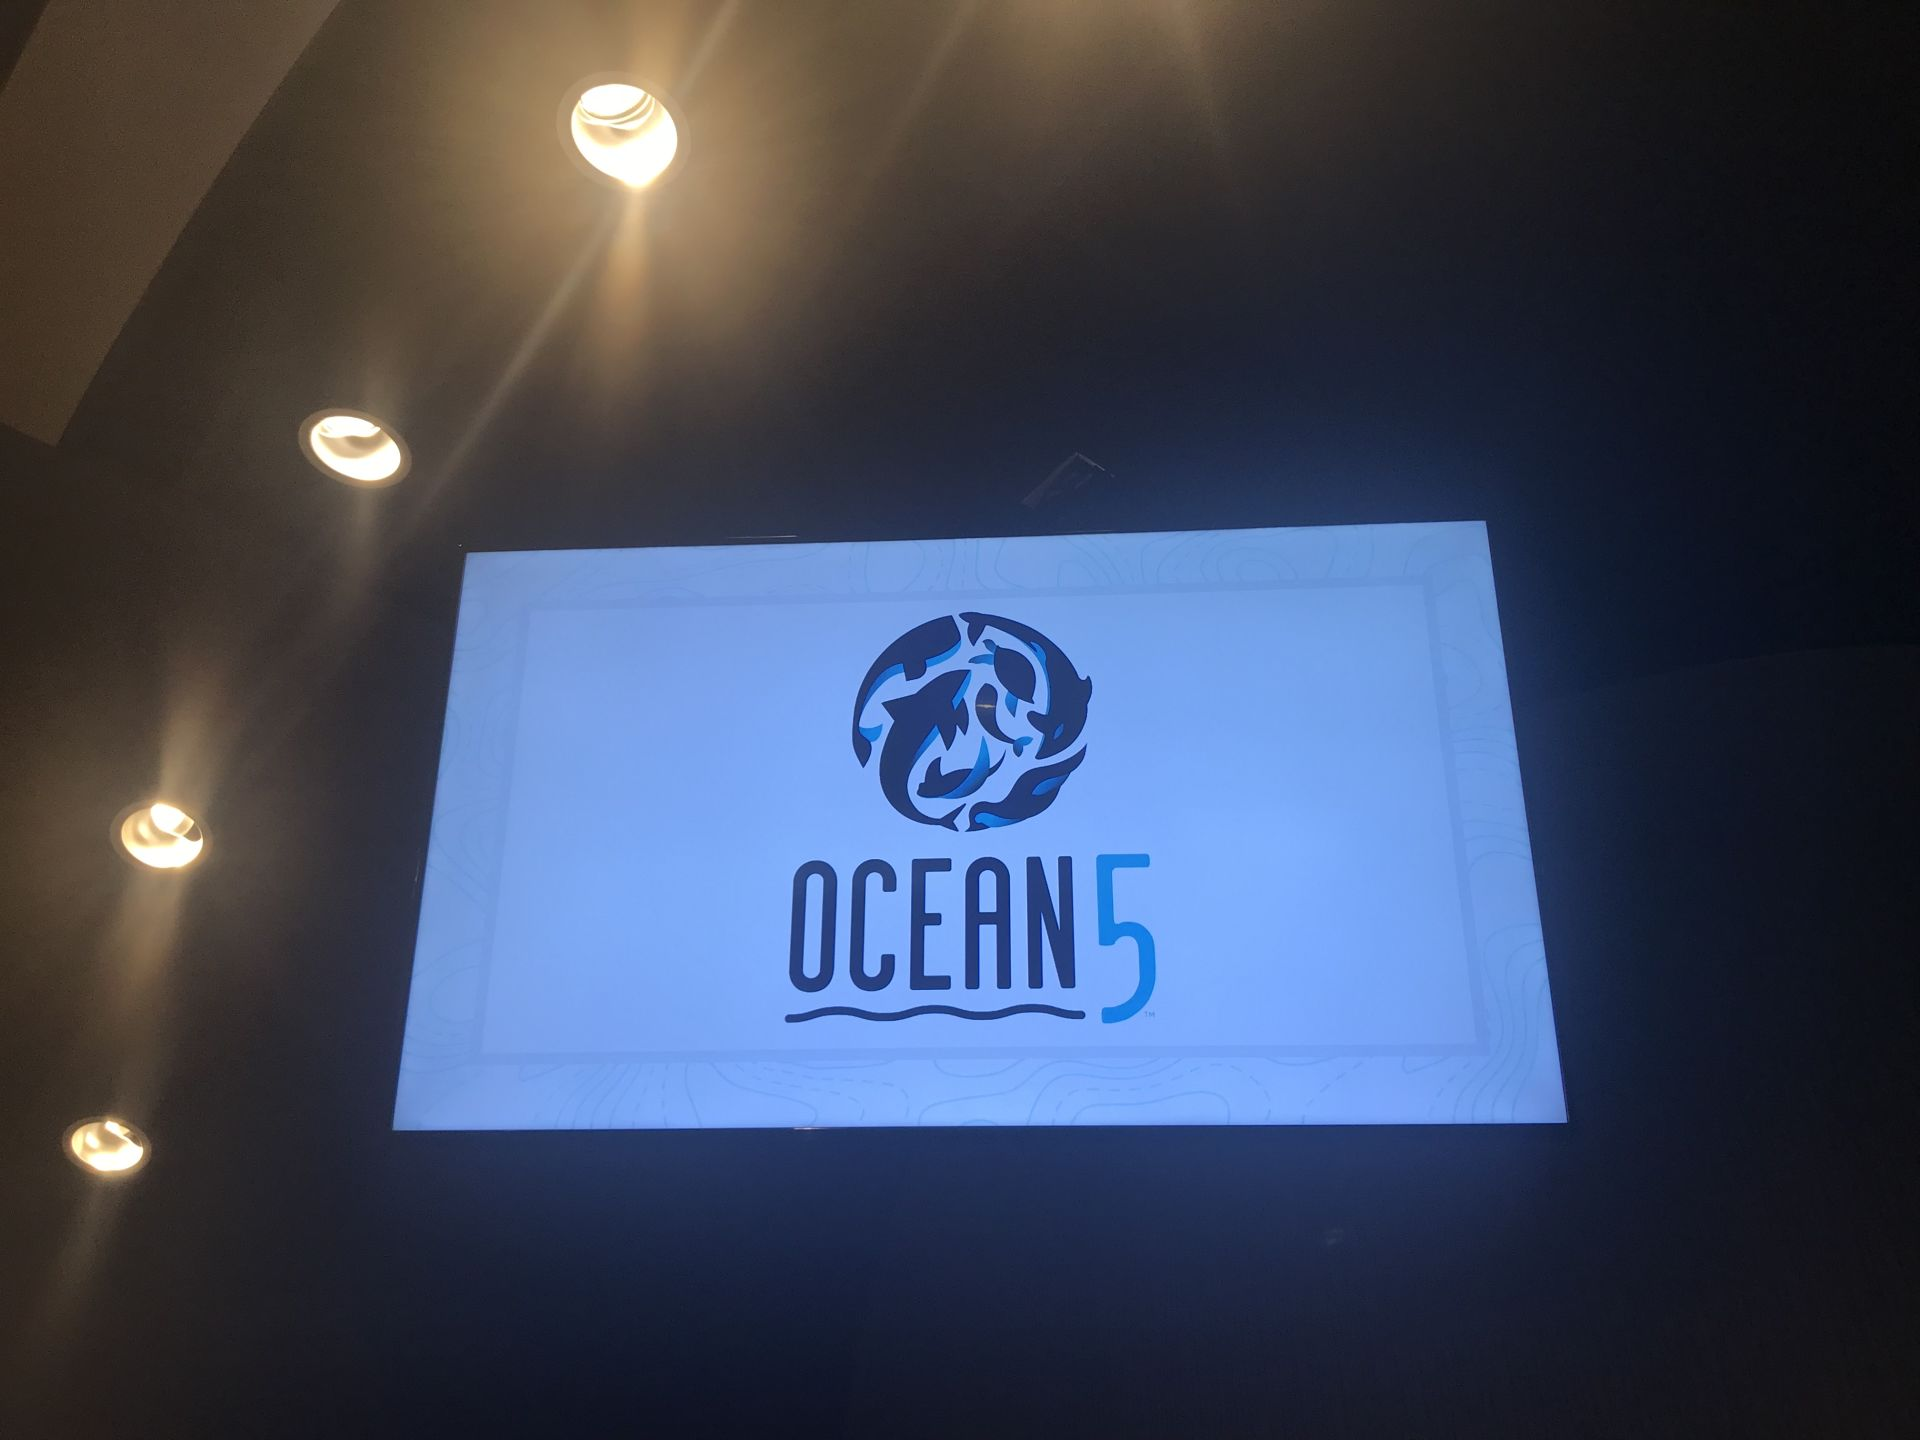 Welcome to the Community, Ocean 5!